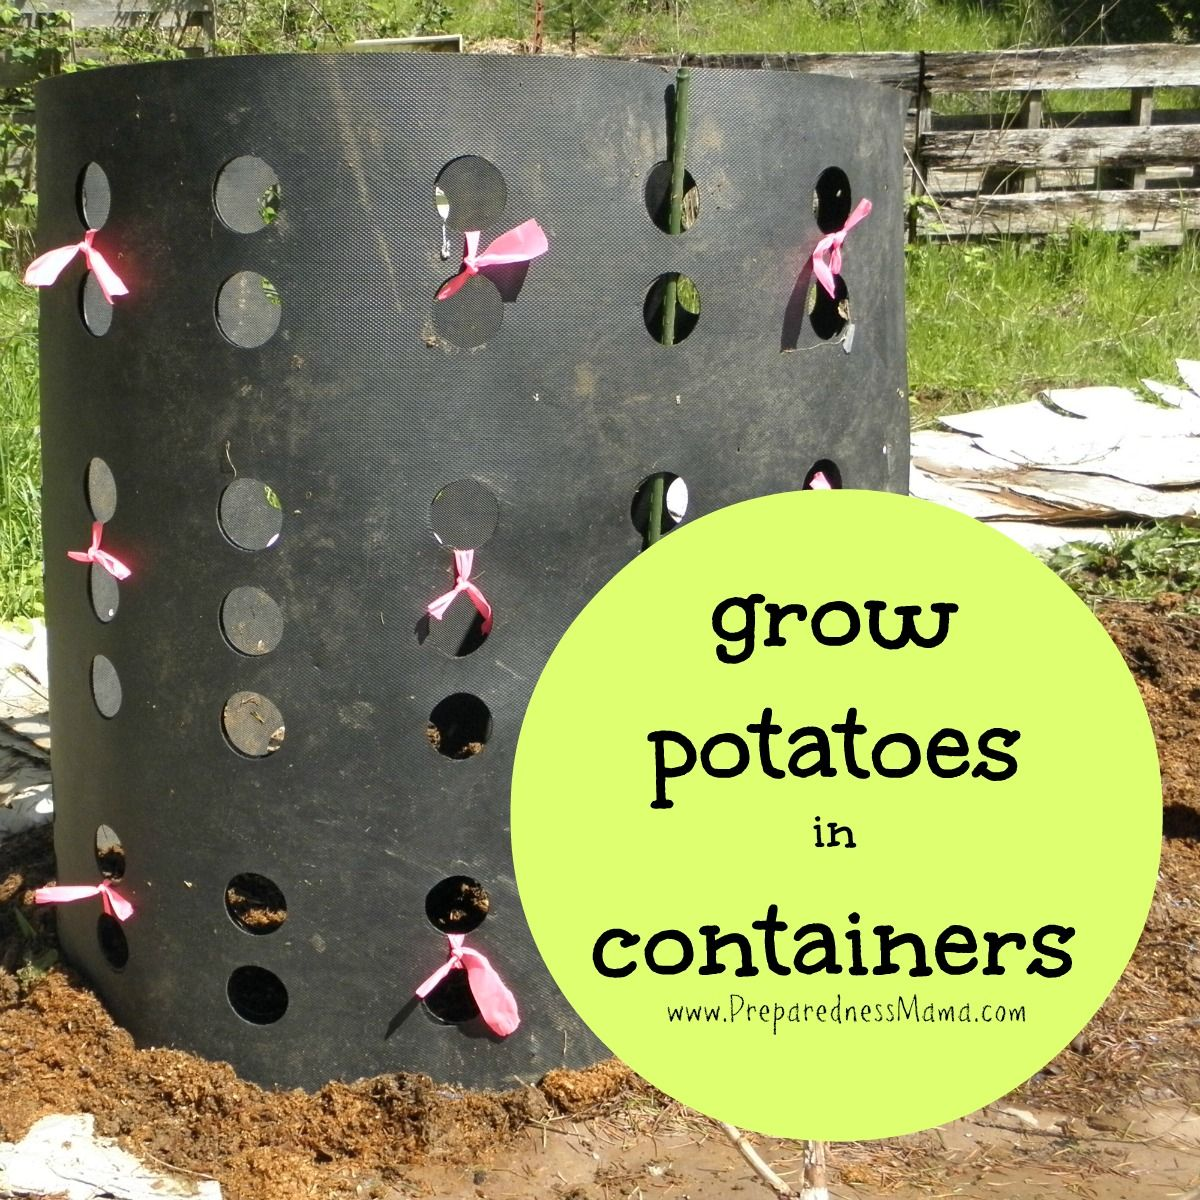 There are many fun and creative ways to grow potatoes in containers and get big yields Find the one thats right for you